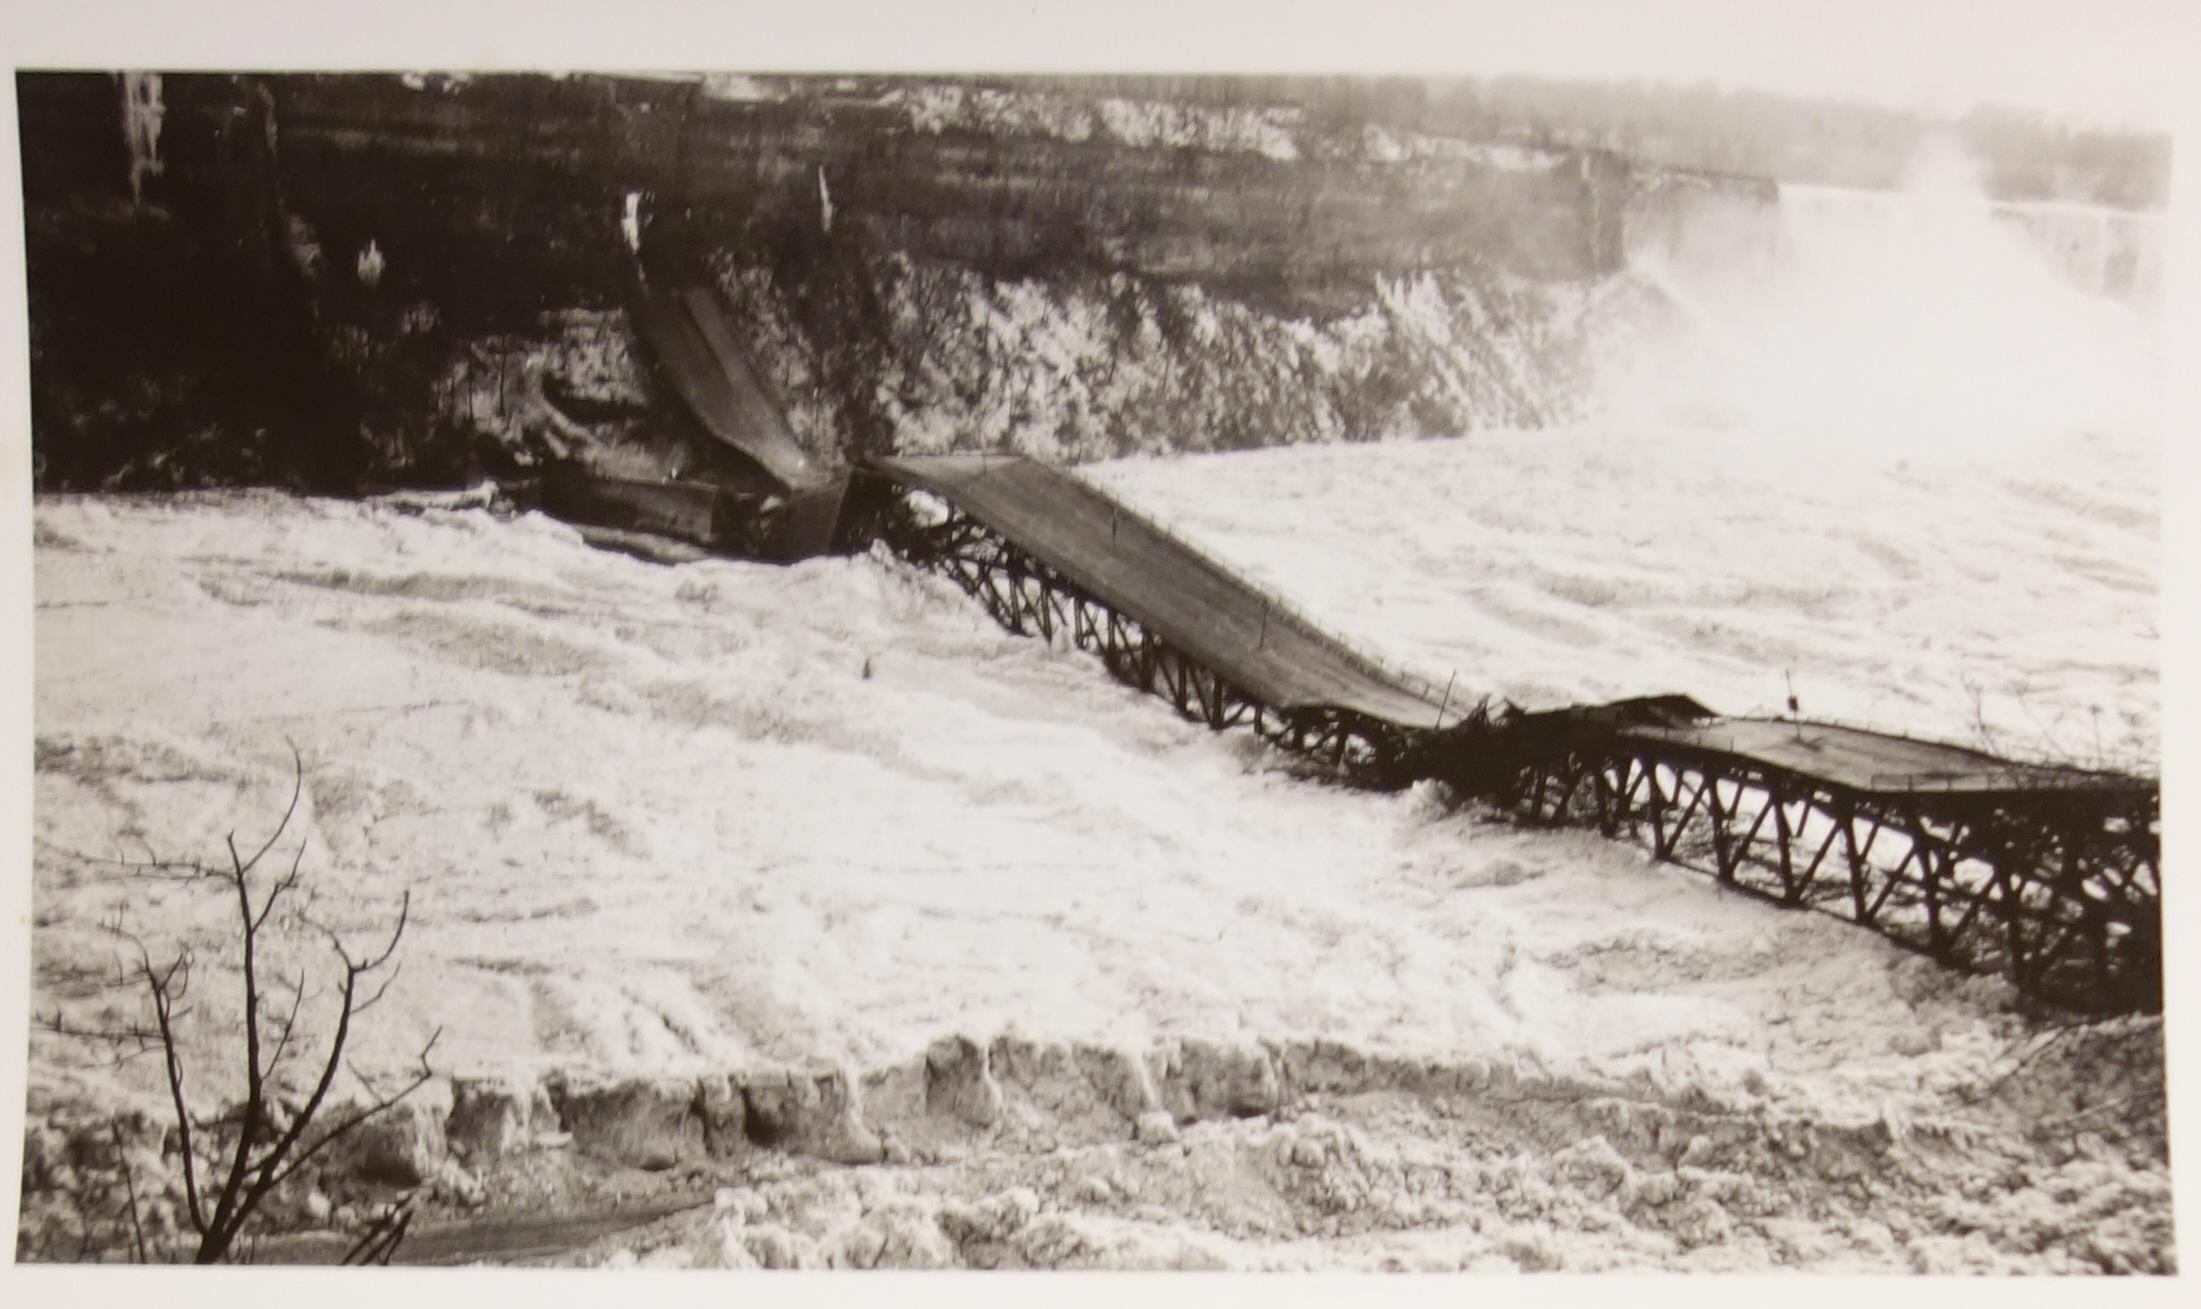 Collapse of the Upper Steel Arch Bridge on January 27, 1938. Black and white photograph of the wreckage after the ice jam pushed the arch bridge off of its footings. The dark steel structure juxtaposes the white ice and snow. The American Falls is at the far right and thus the photo is taken from the Canadian side. A tree is in the fore-ground at the left of the image with no leaves.